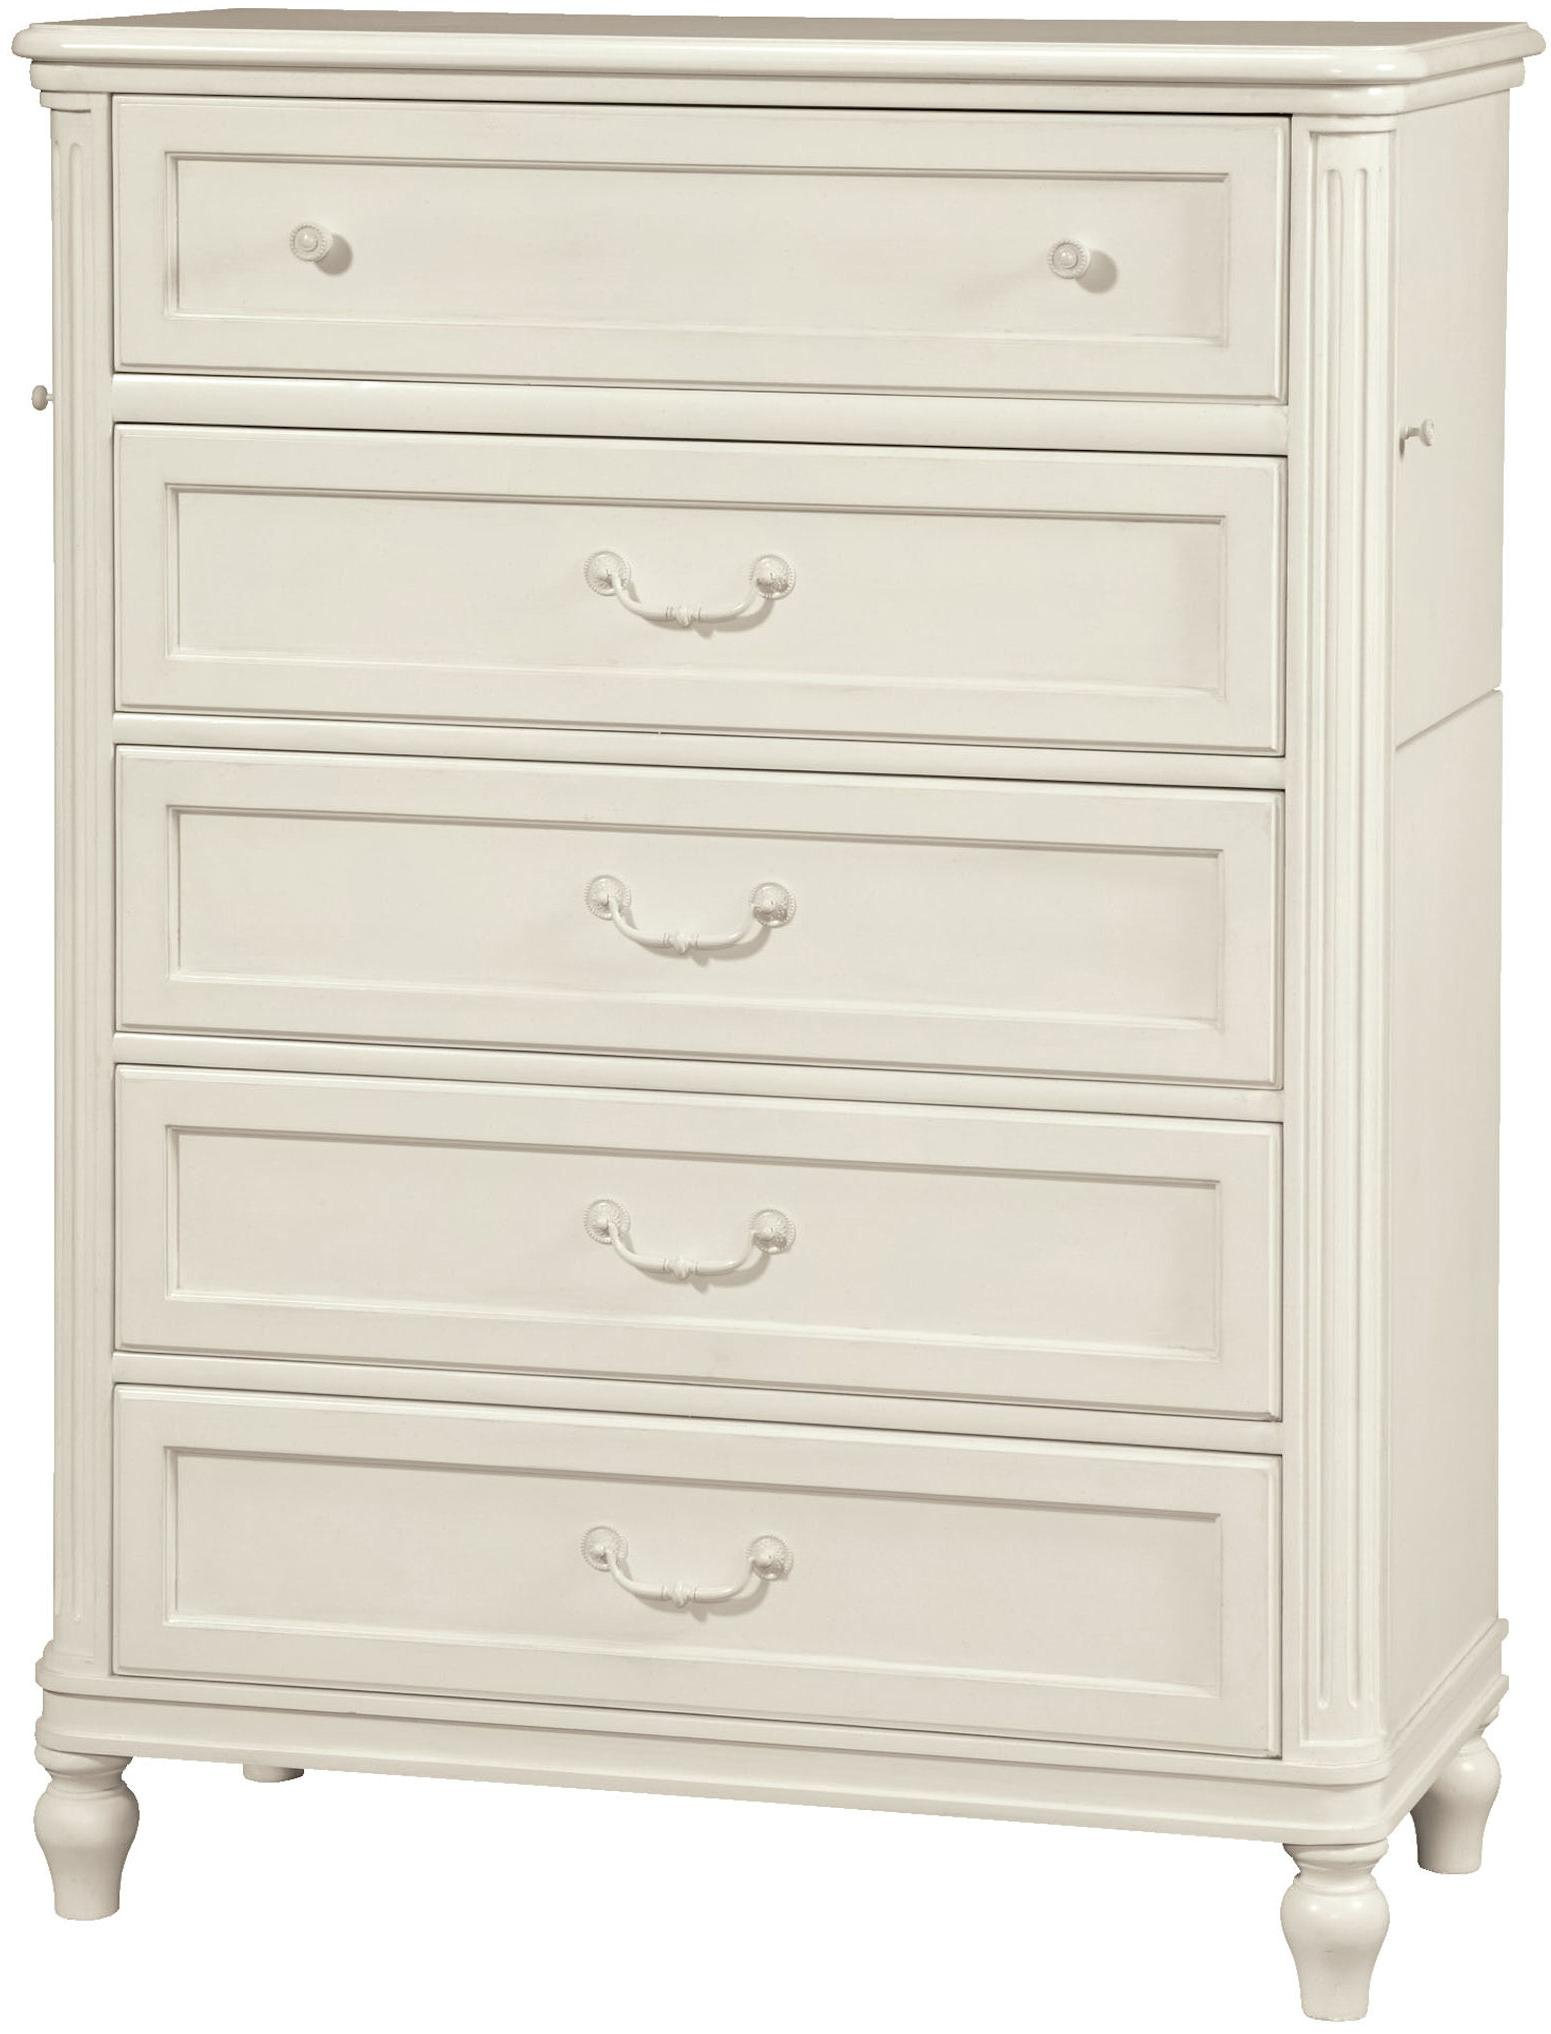 Smartstuff Gabriella Drawer Chest - Item Number: 136A010